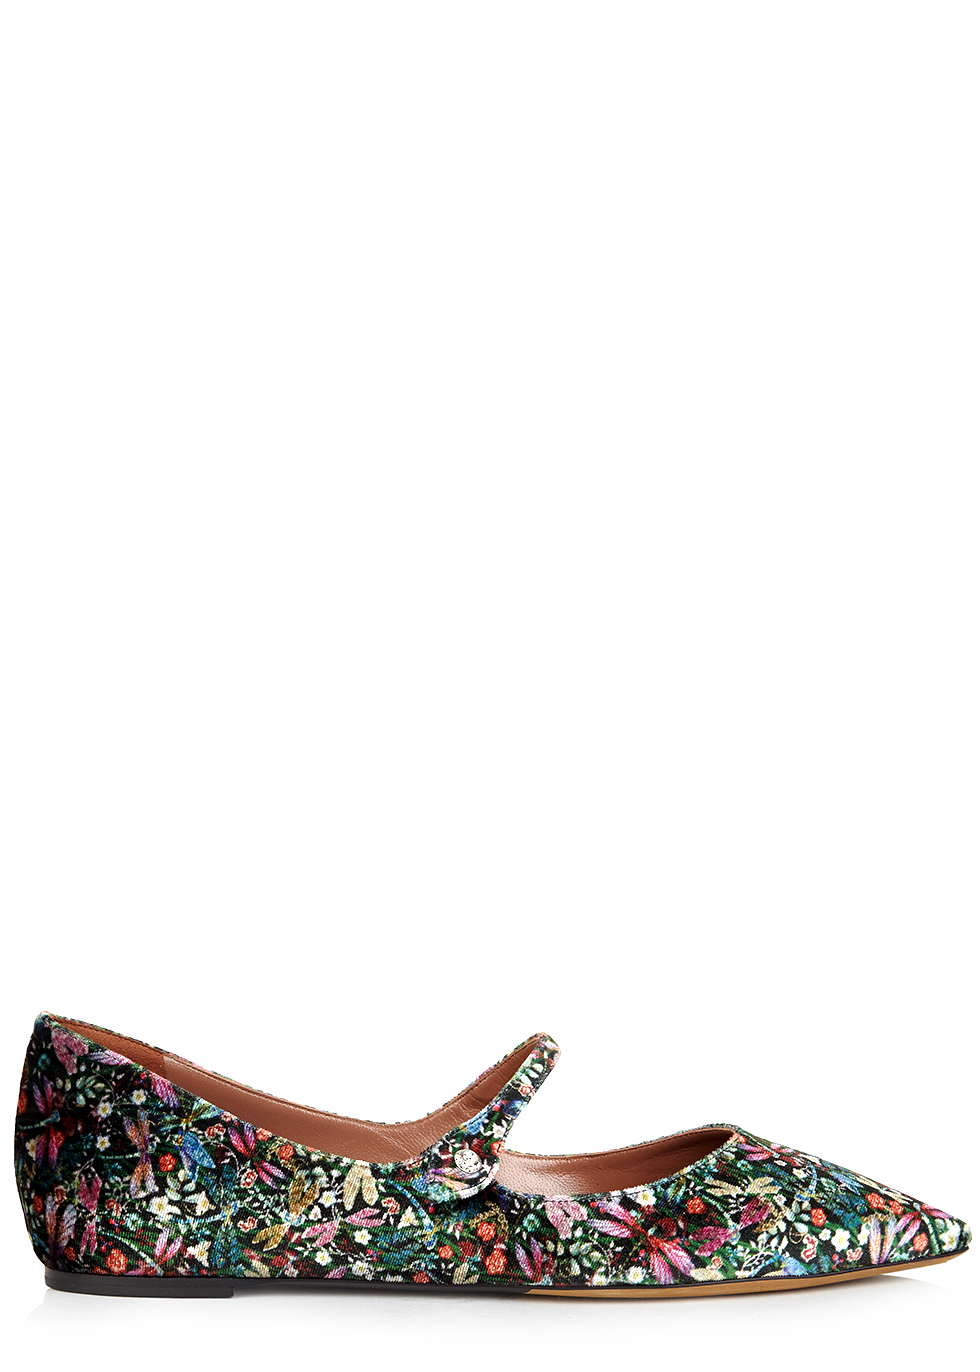 Hermione Floral Print Velvet Flats - predominant colour: dark green; occasions: casual, creative work; material: velvet; heel height: flat; toe: pointed toe; style: ballerinas / pumps; finish: plain; pattern: florals; multicoloured: multicoloured; season: a/w 2016